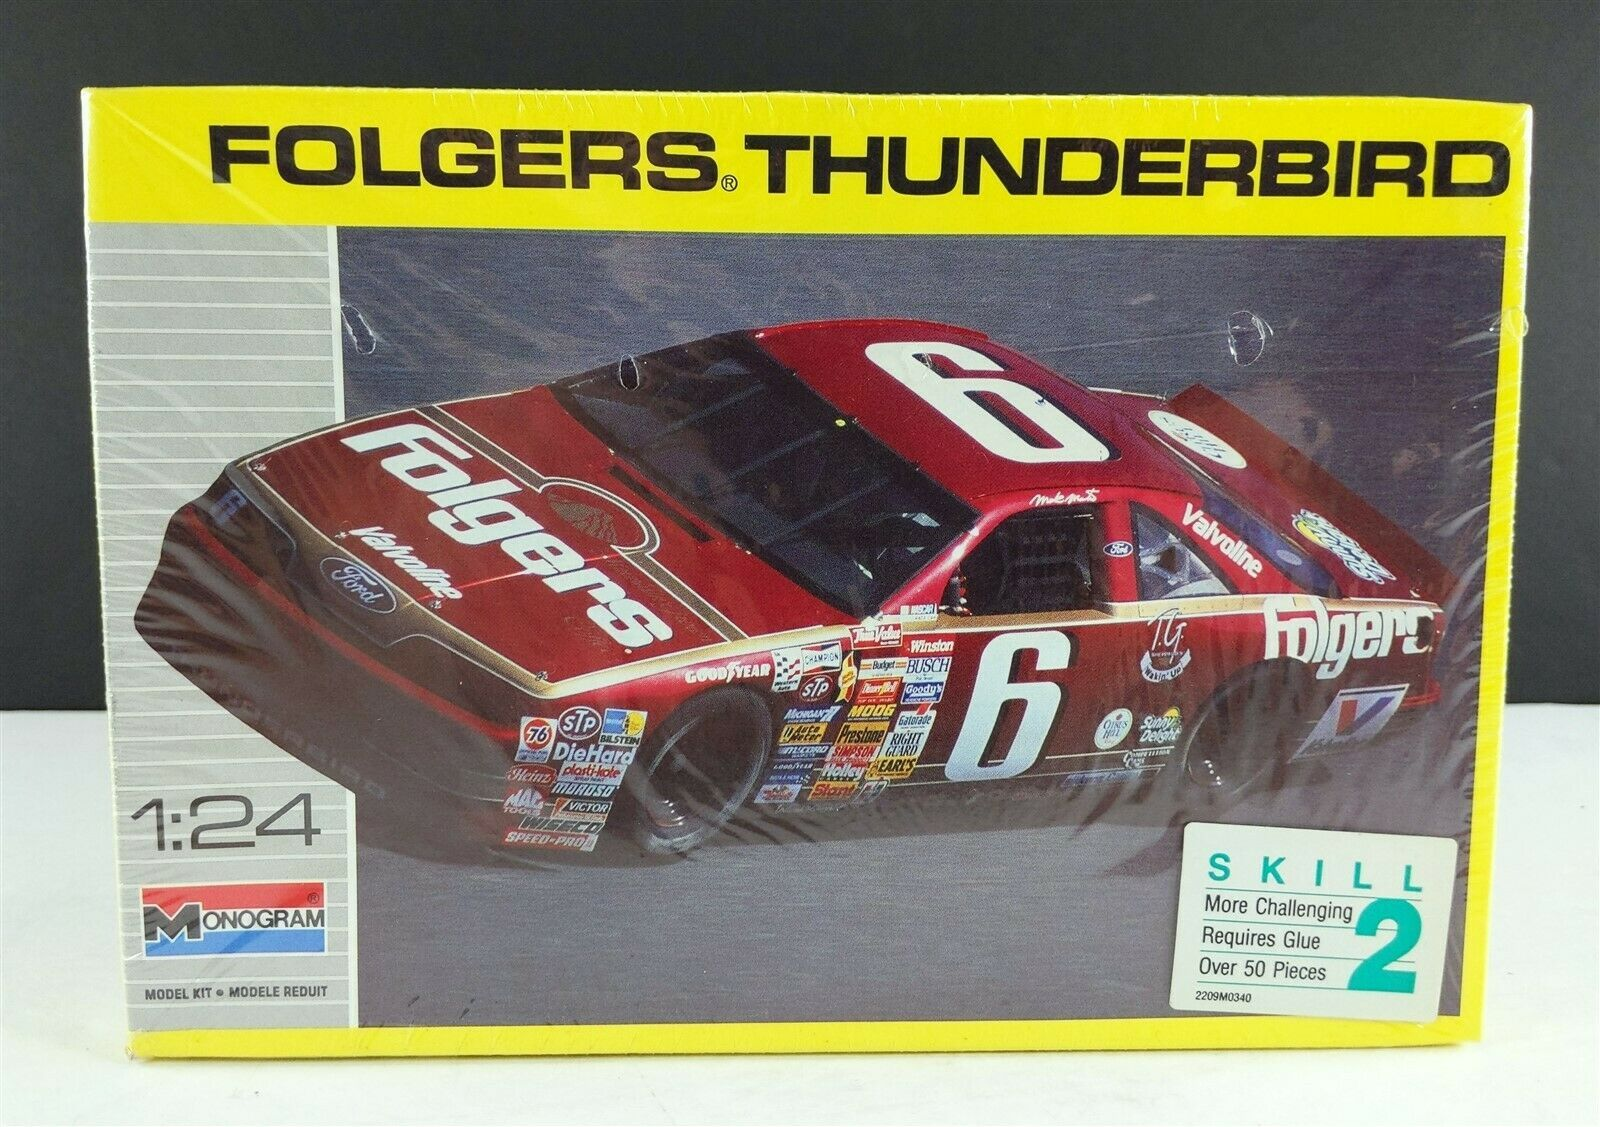 Primary image for MONOGRAM 2928 FOLGERS Thunderbird Mark Martin 1:24 Model Car Kit